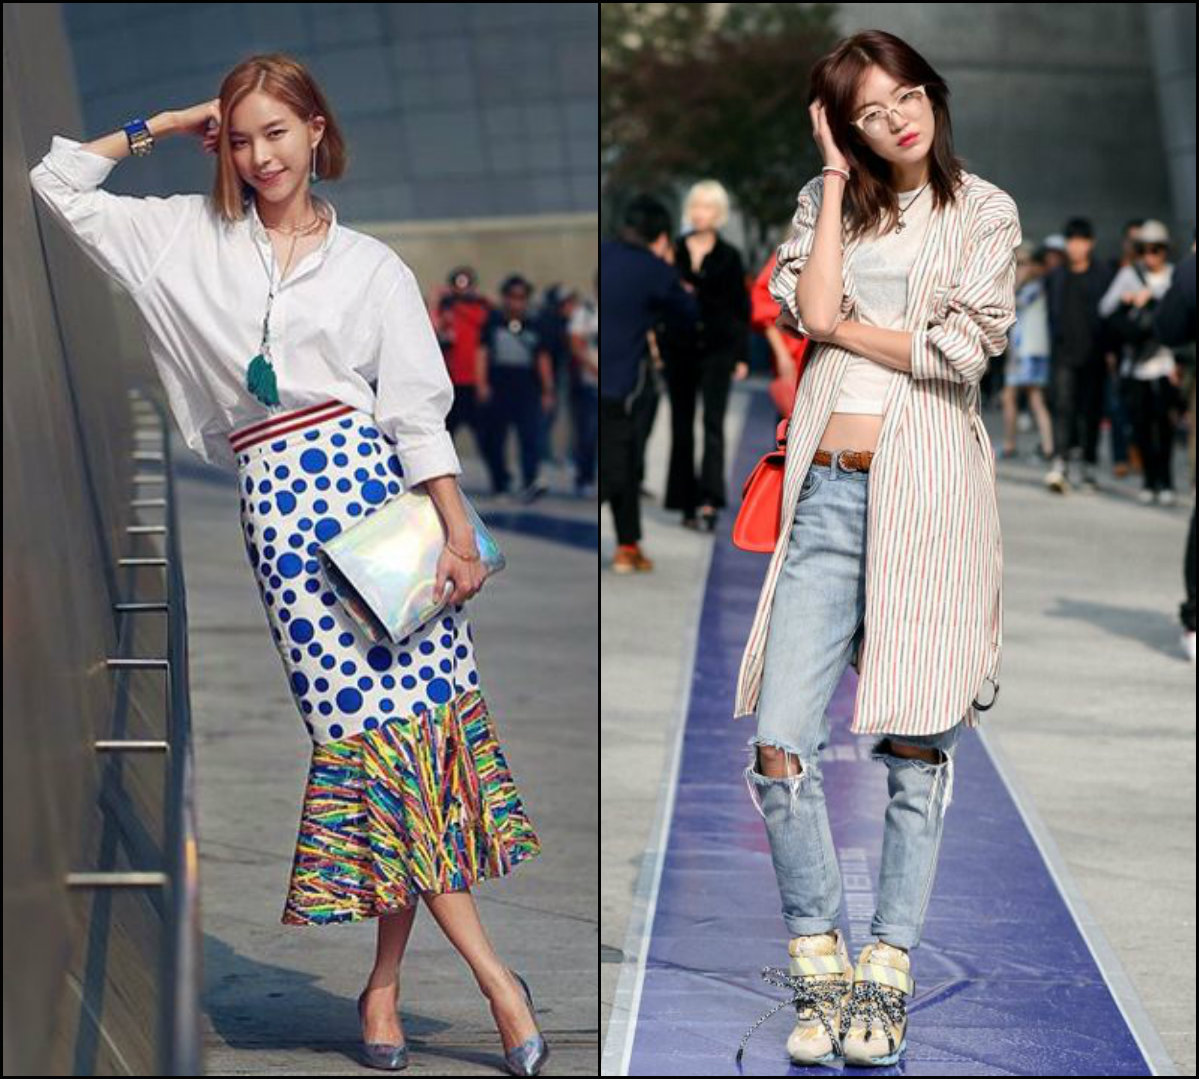 street style looks and bob haircuts for Asian women